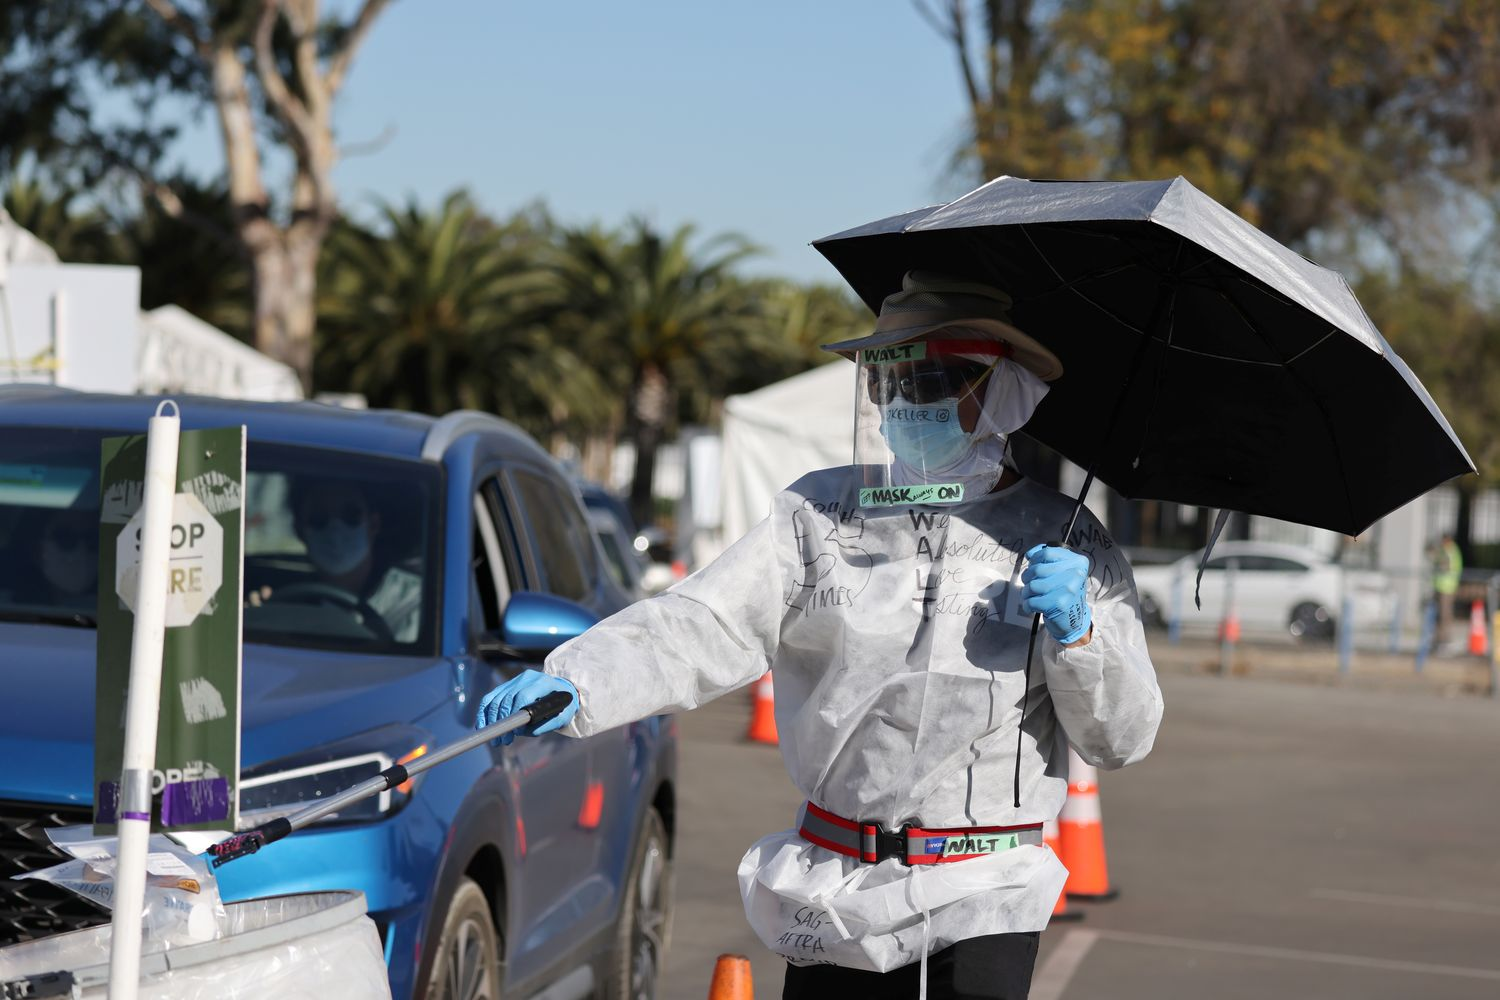 LA orders stay-home, US sees deadliest day ever: Virus Update